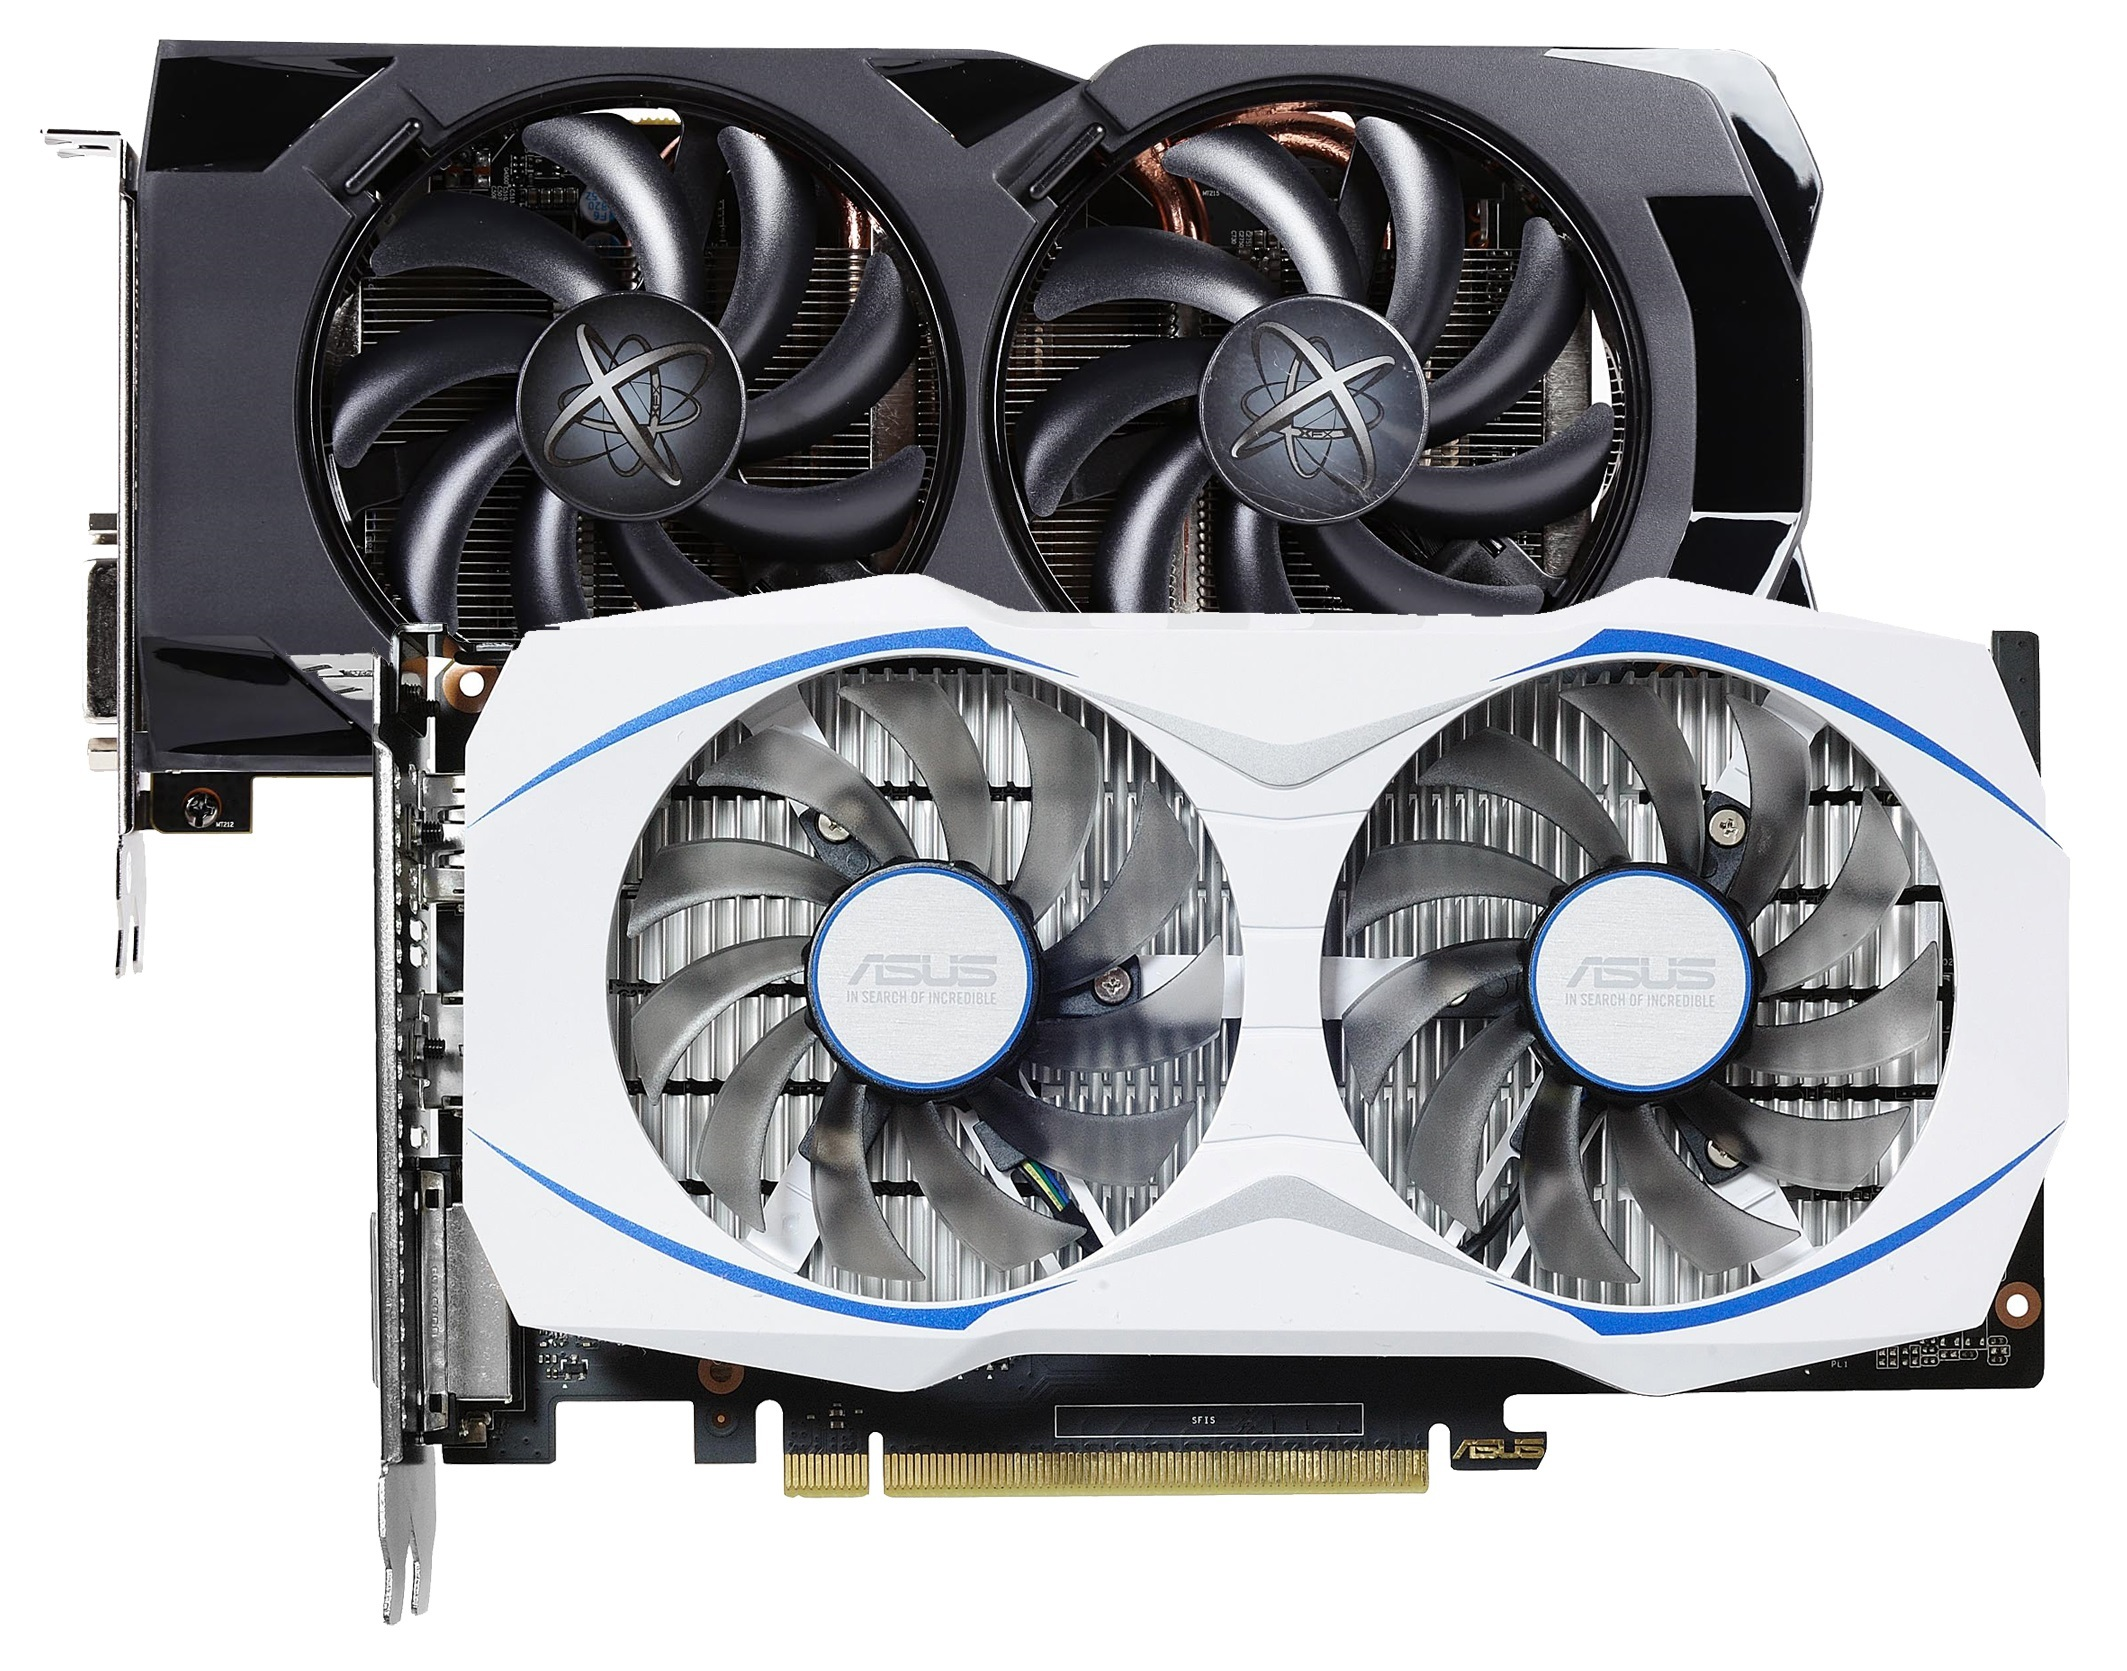 Graphics Cards and Video Cards - Newegg.com